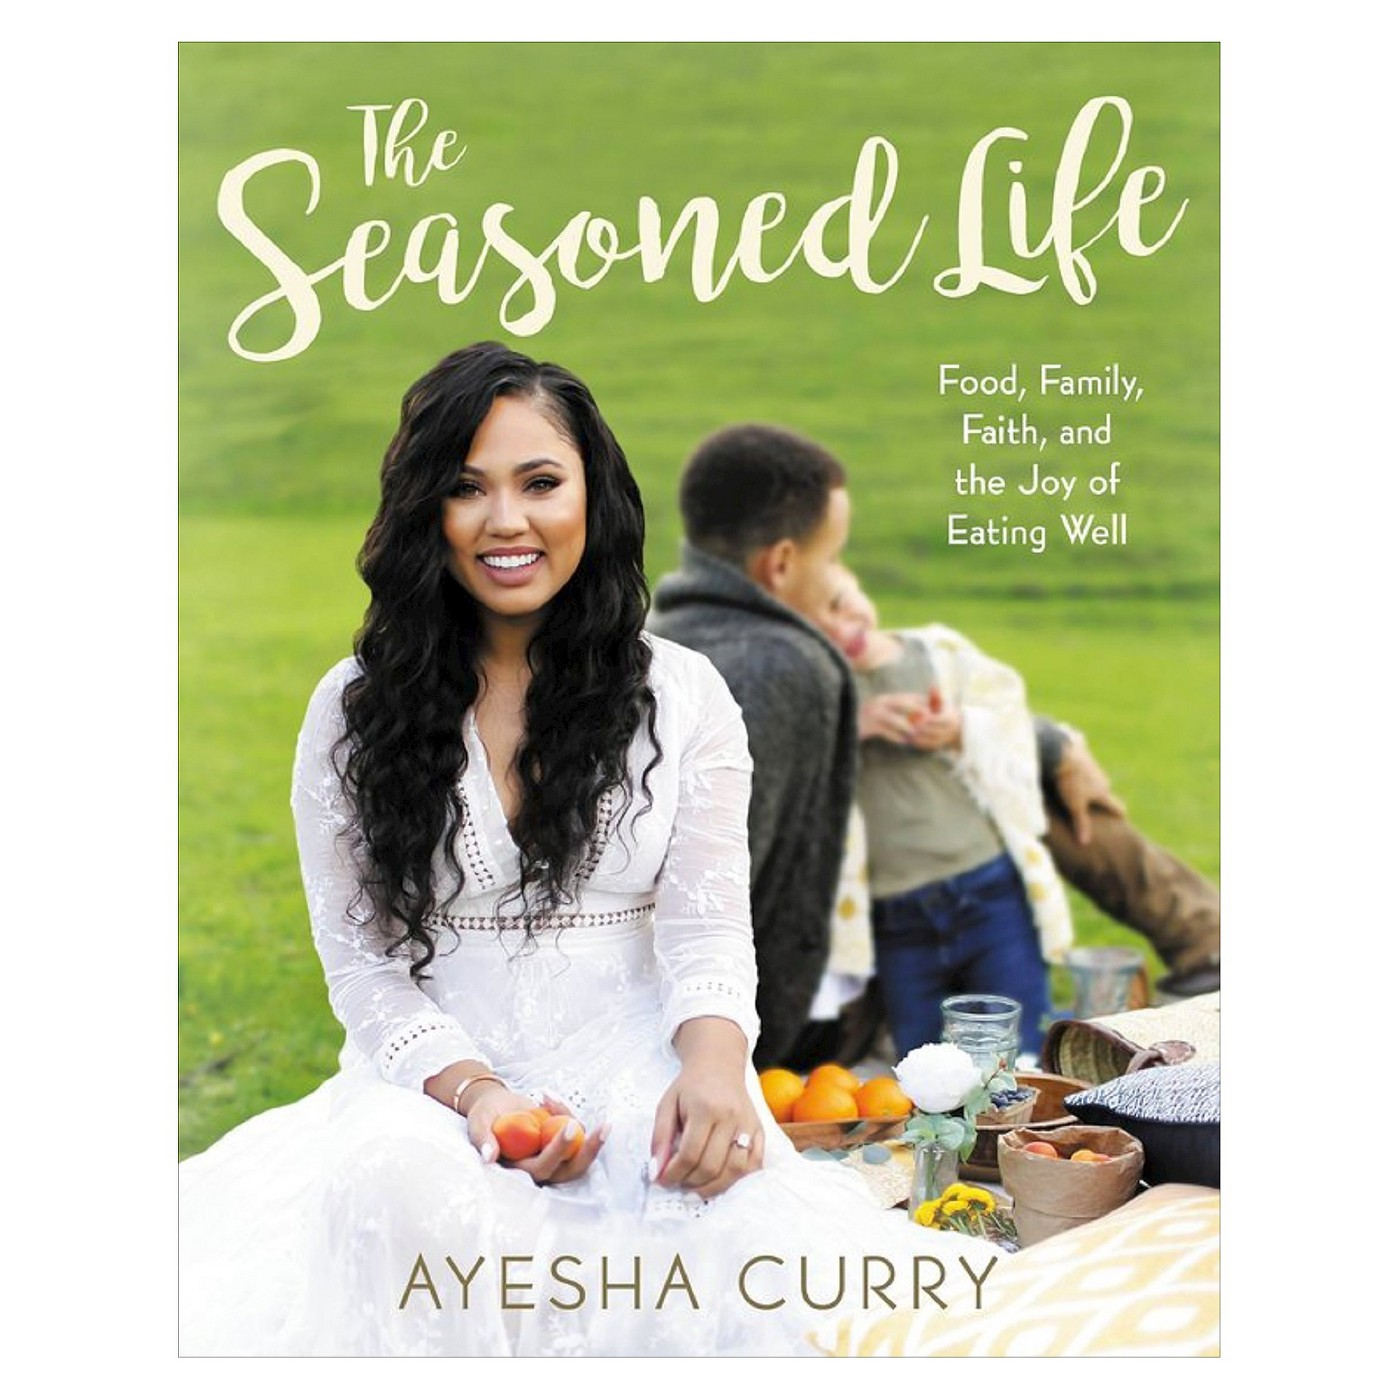 The Seasoned Life - by Ayesha Curry